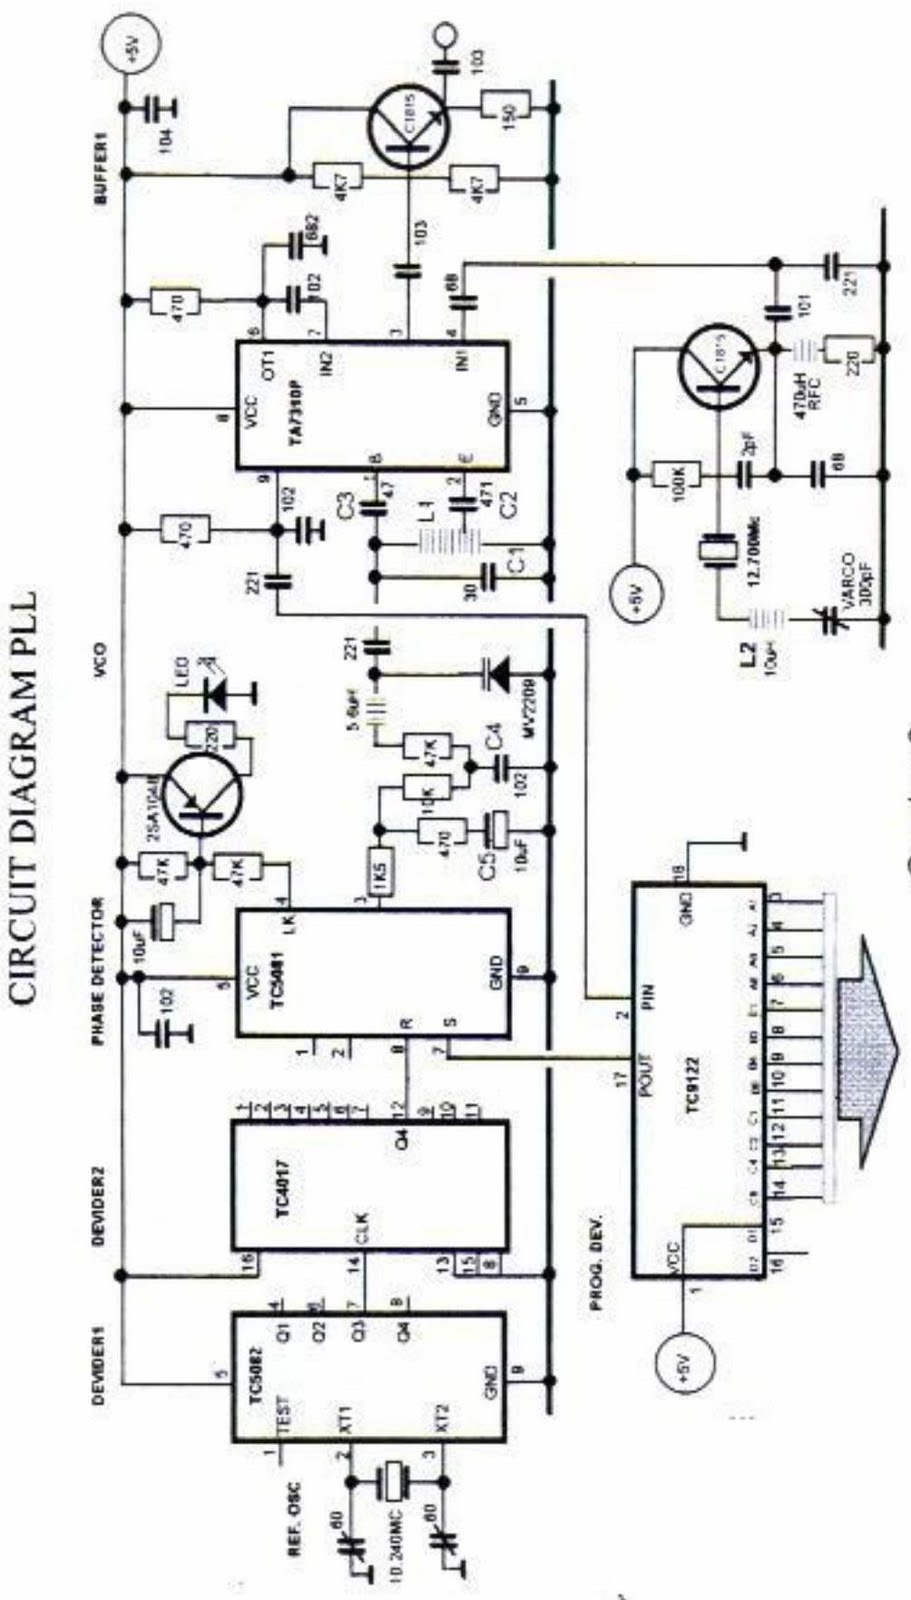 Electronic Circuits Page 178 Twoband Ptb Tone Control Useful Easy Cheap Awesome Phase Lock Loop Frequency Synthesizer